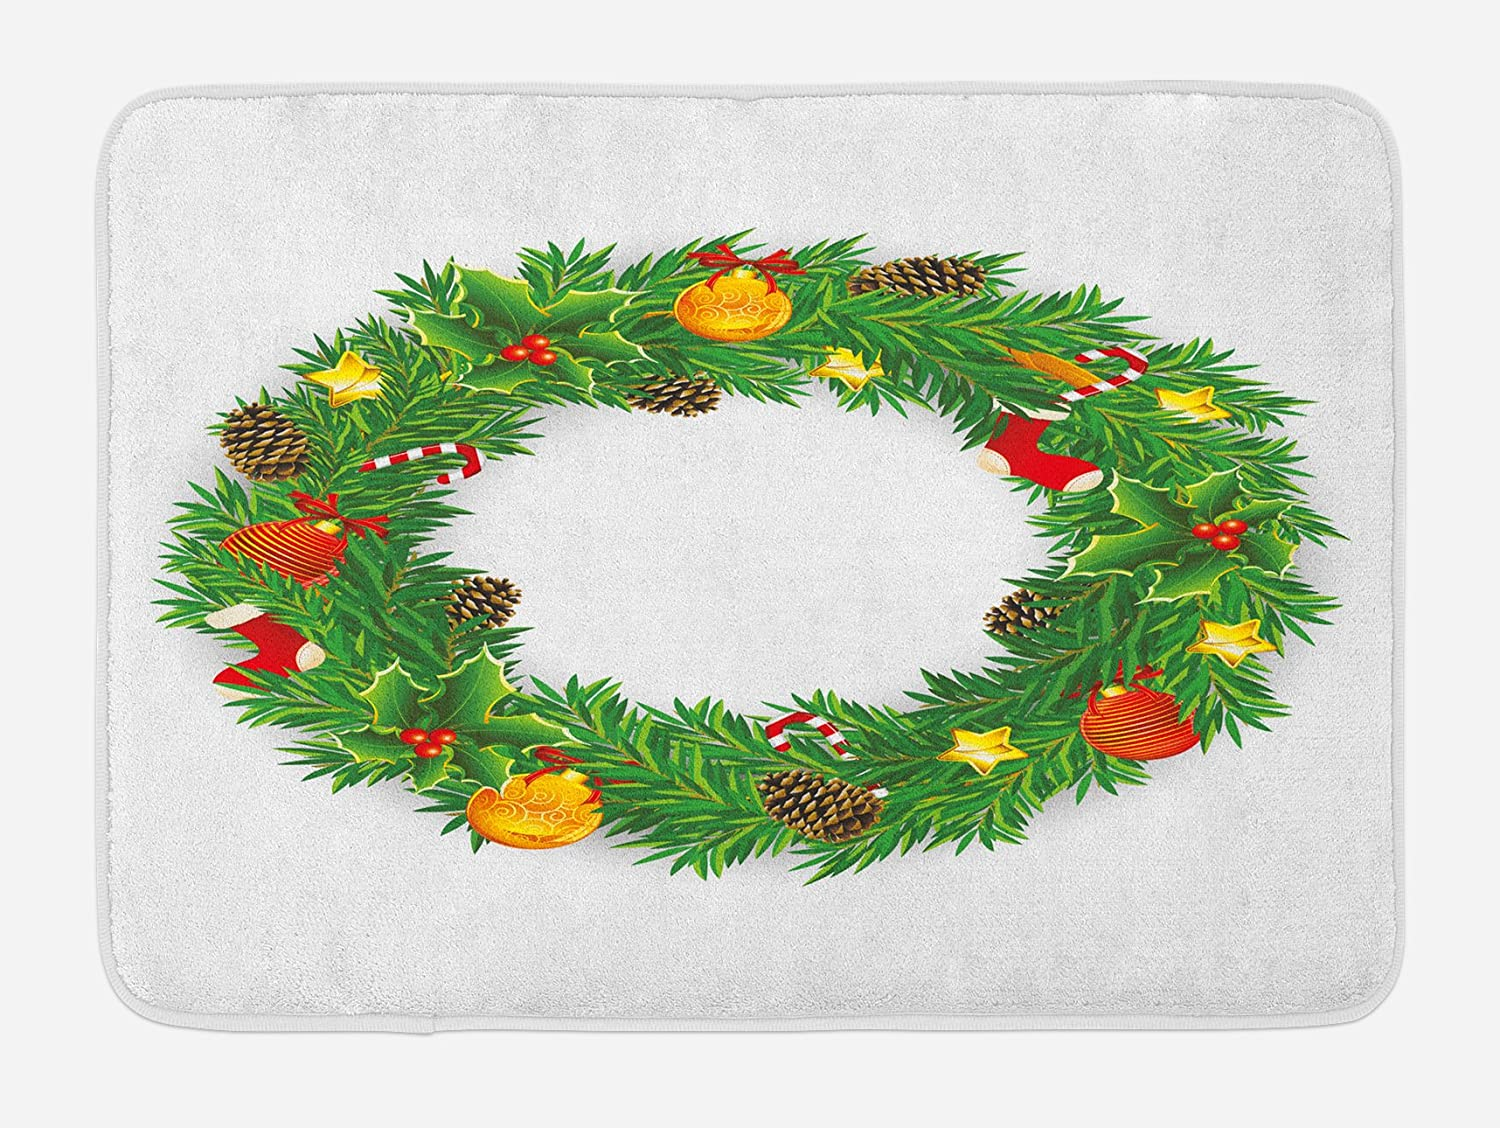 Ambesonne Christmas Bath Mat, Illustration of Dressed Christmas Wreath with Festival Objects Vivid Design, Plush Bathroom Decor Mat with Non Slip Backing, 29.5